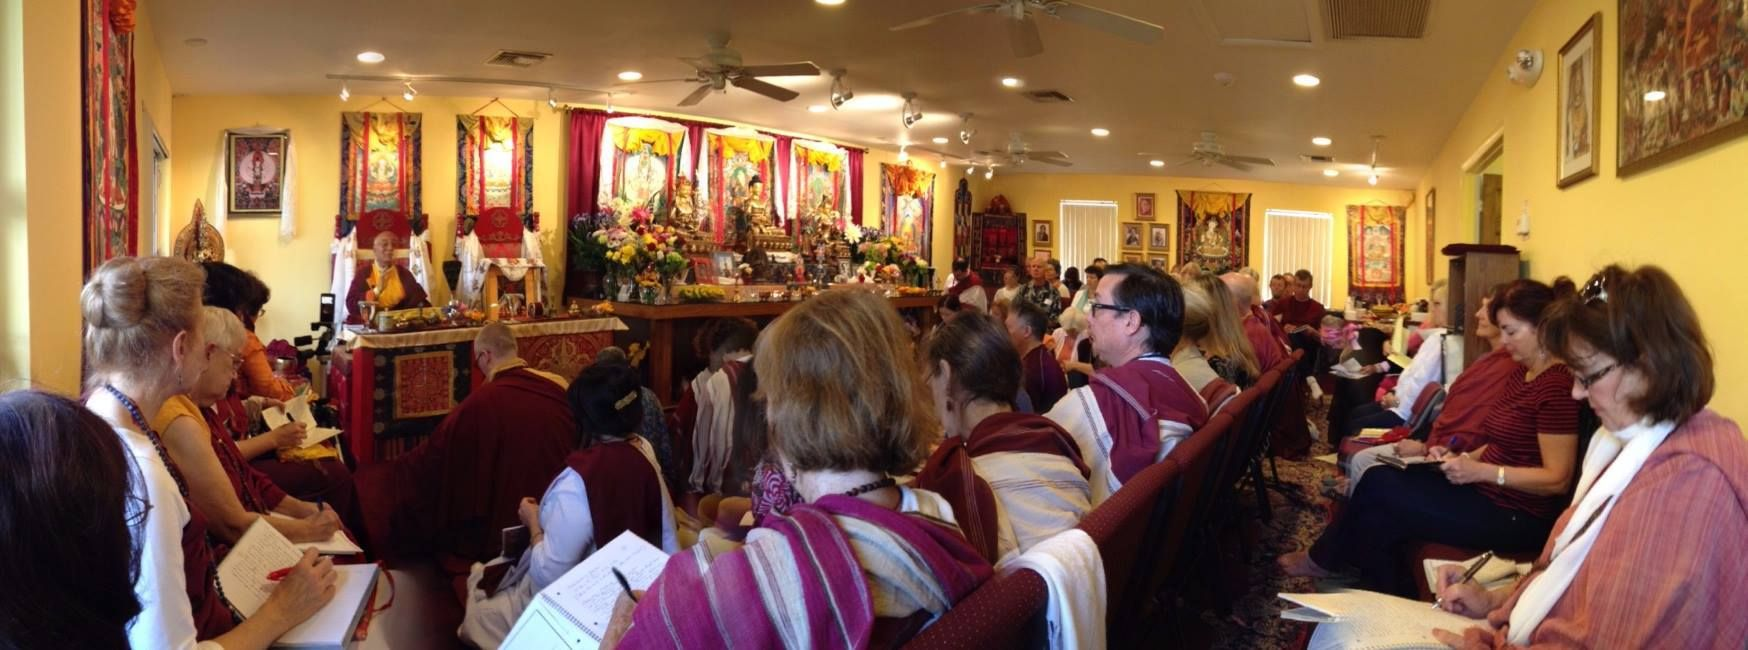 Palm Beach Dharma Center